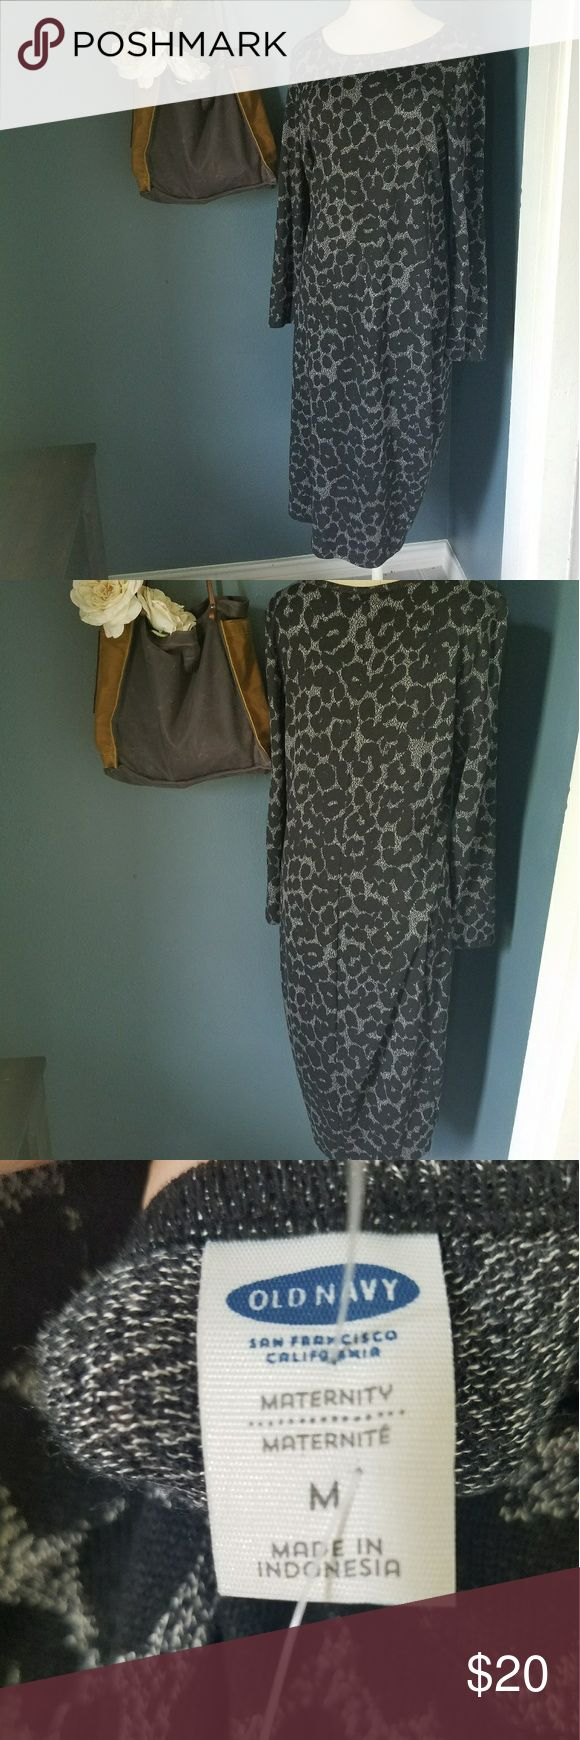 Old Navy Maternity dress in dark cheetah knit Worn once for my second child's baby shower, was a huge hit! Really flattering with a baby bump, can be worn without one too afterwards for a few month ya know ;) soft material and clean - no smoking, no pets. Open to trades and offers! Old Navy Dresses